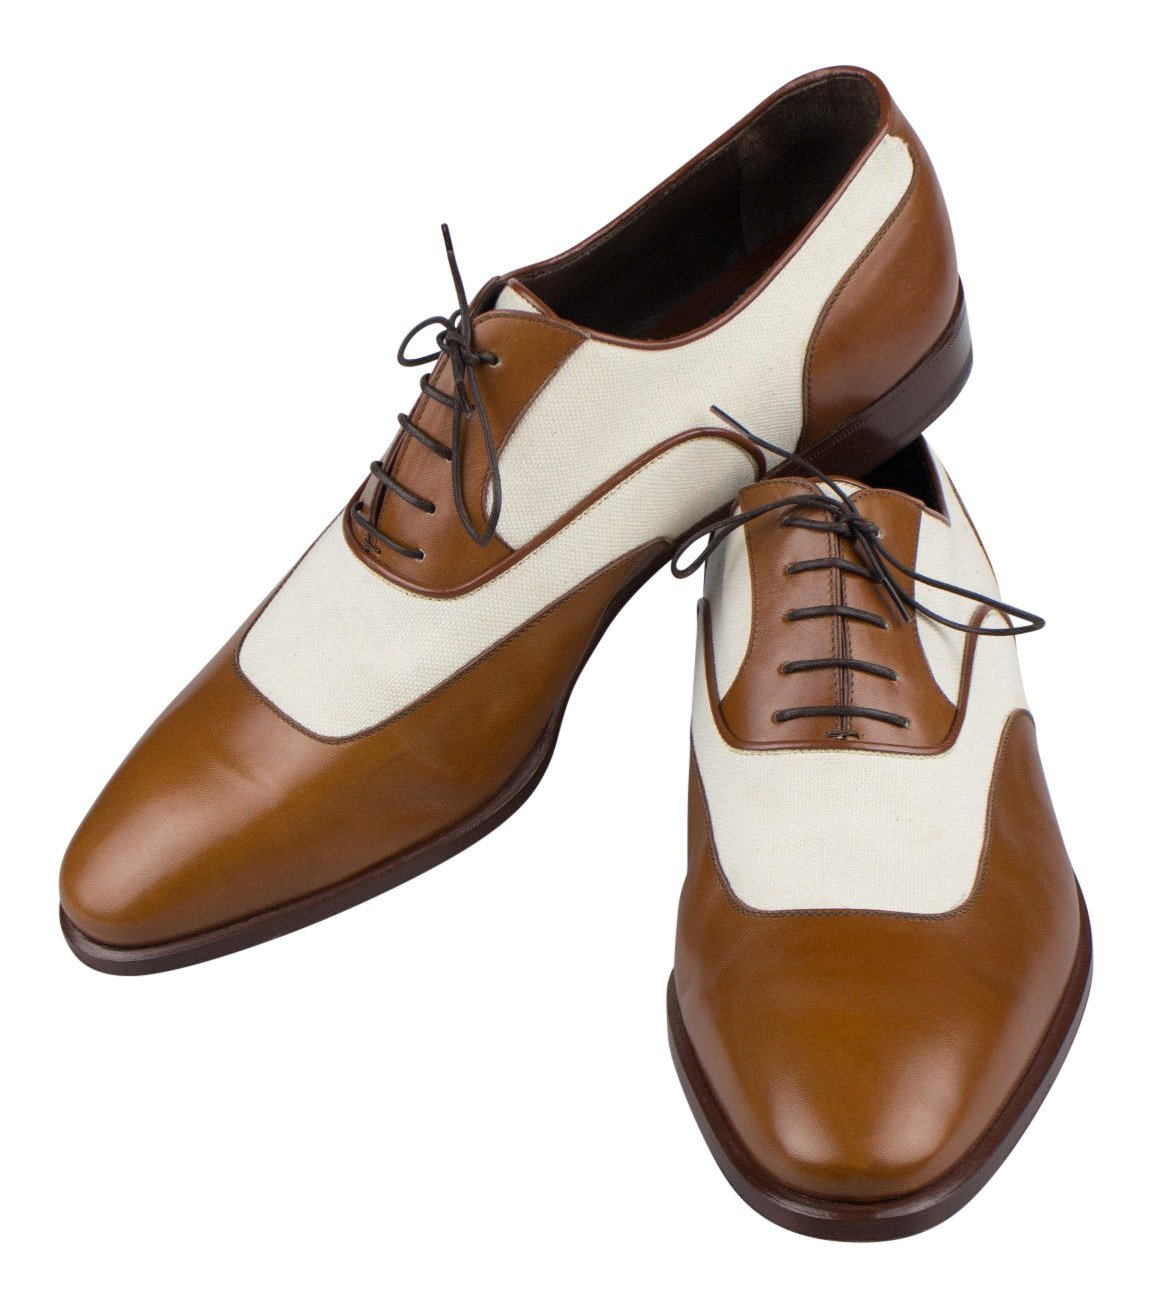 Brioni Brown Leather Canvas Oxfords Dress shoes Size 8.5 41.5